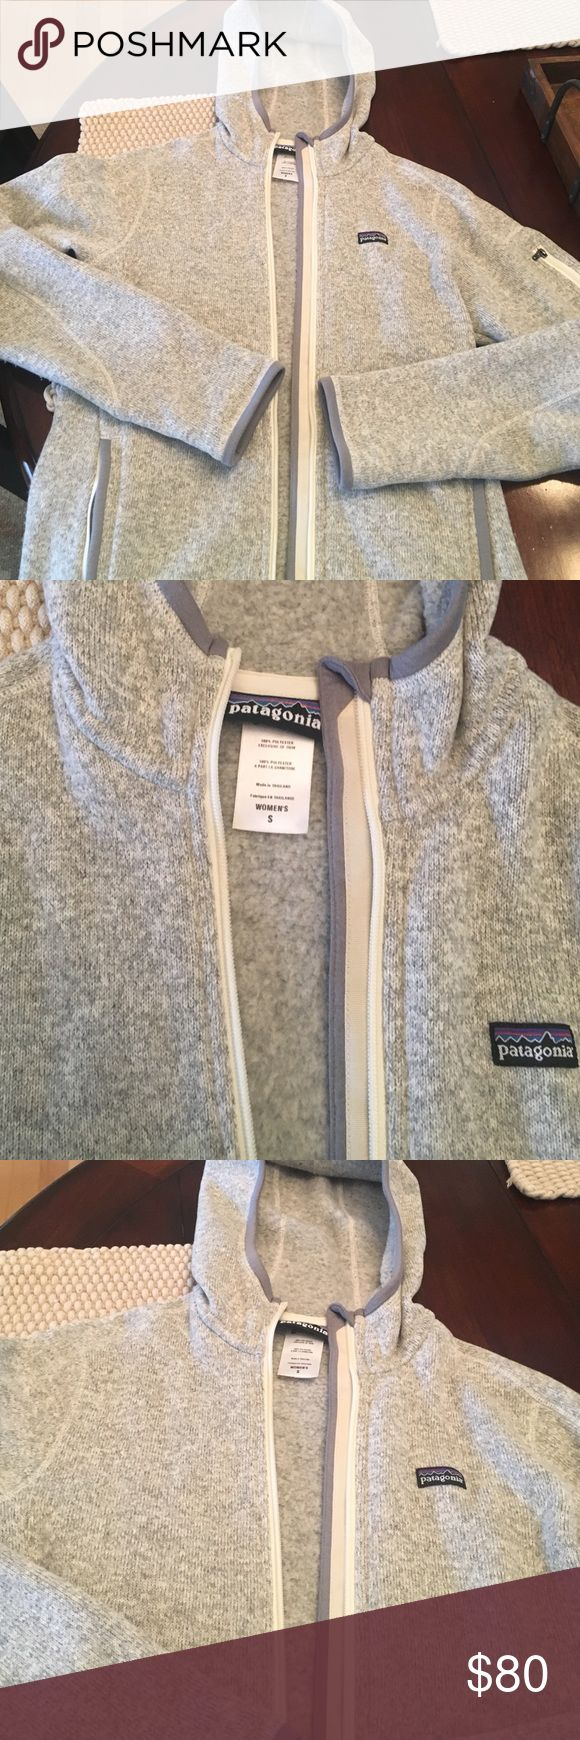 NWOT Patagonia women's jacket Adorable and cozy Patagonia women's zip up jacket with hood. Heathered gray/cream color. Never worn! Patagonia Jackets & Coats